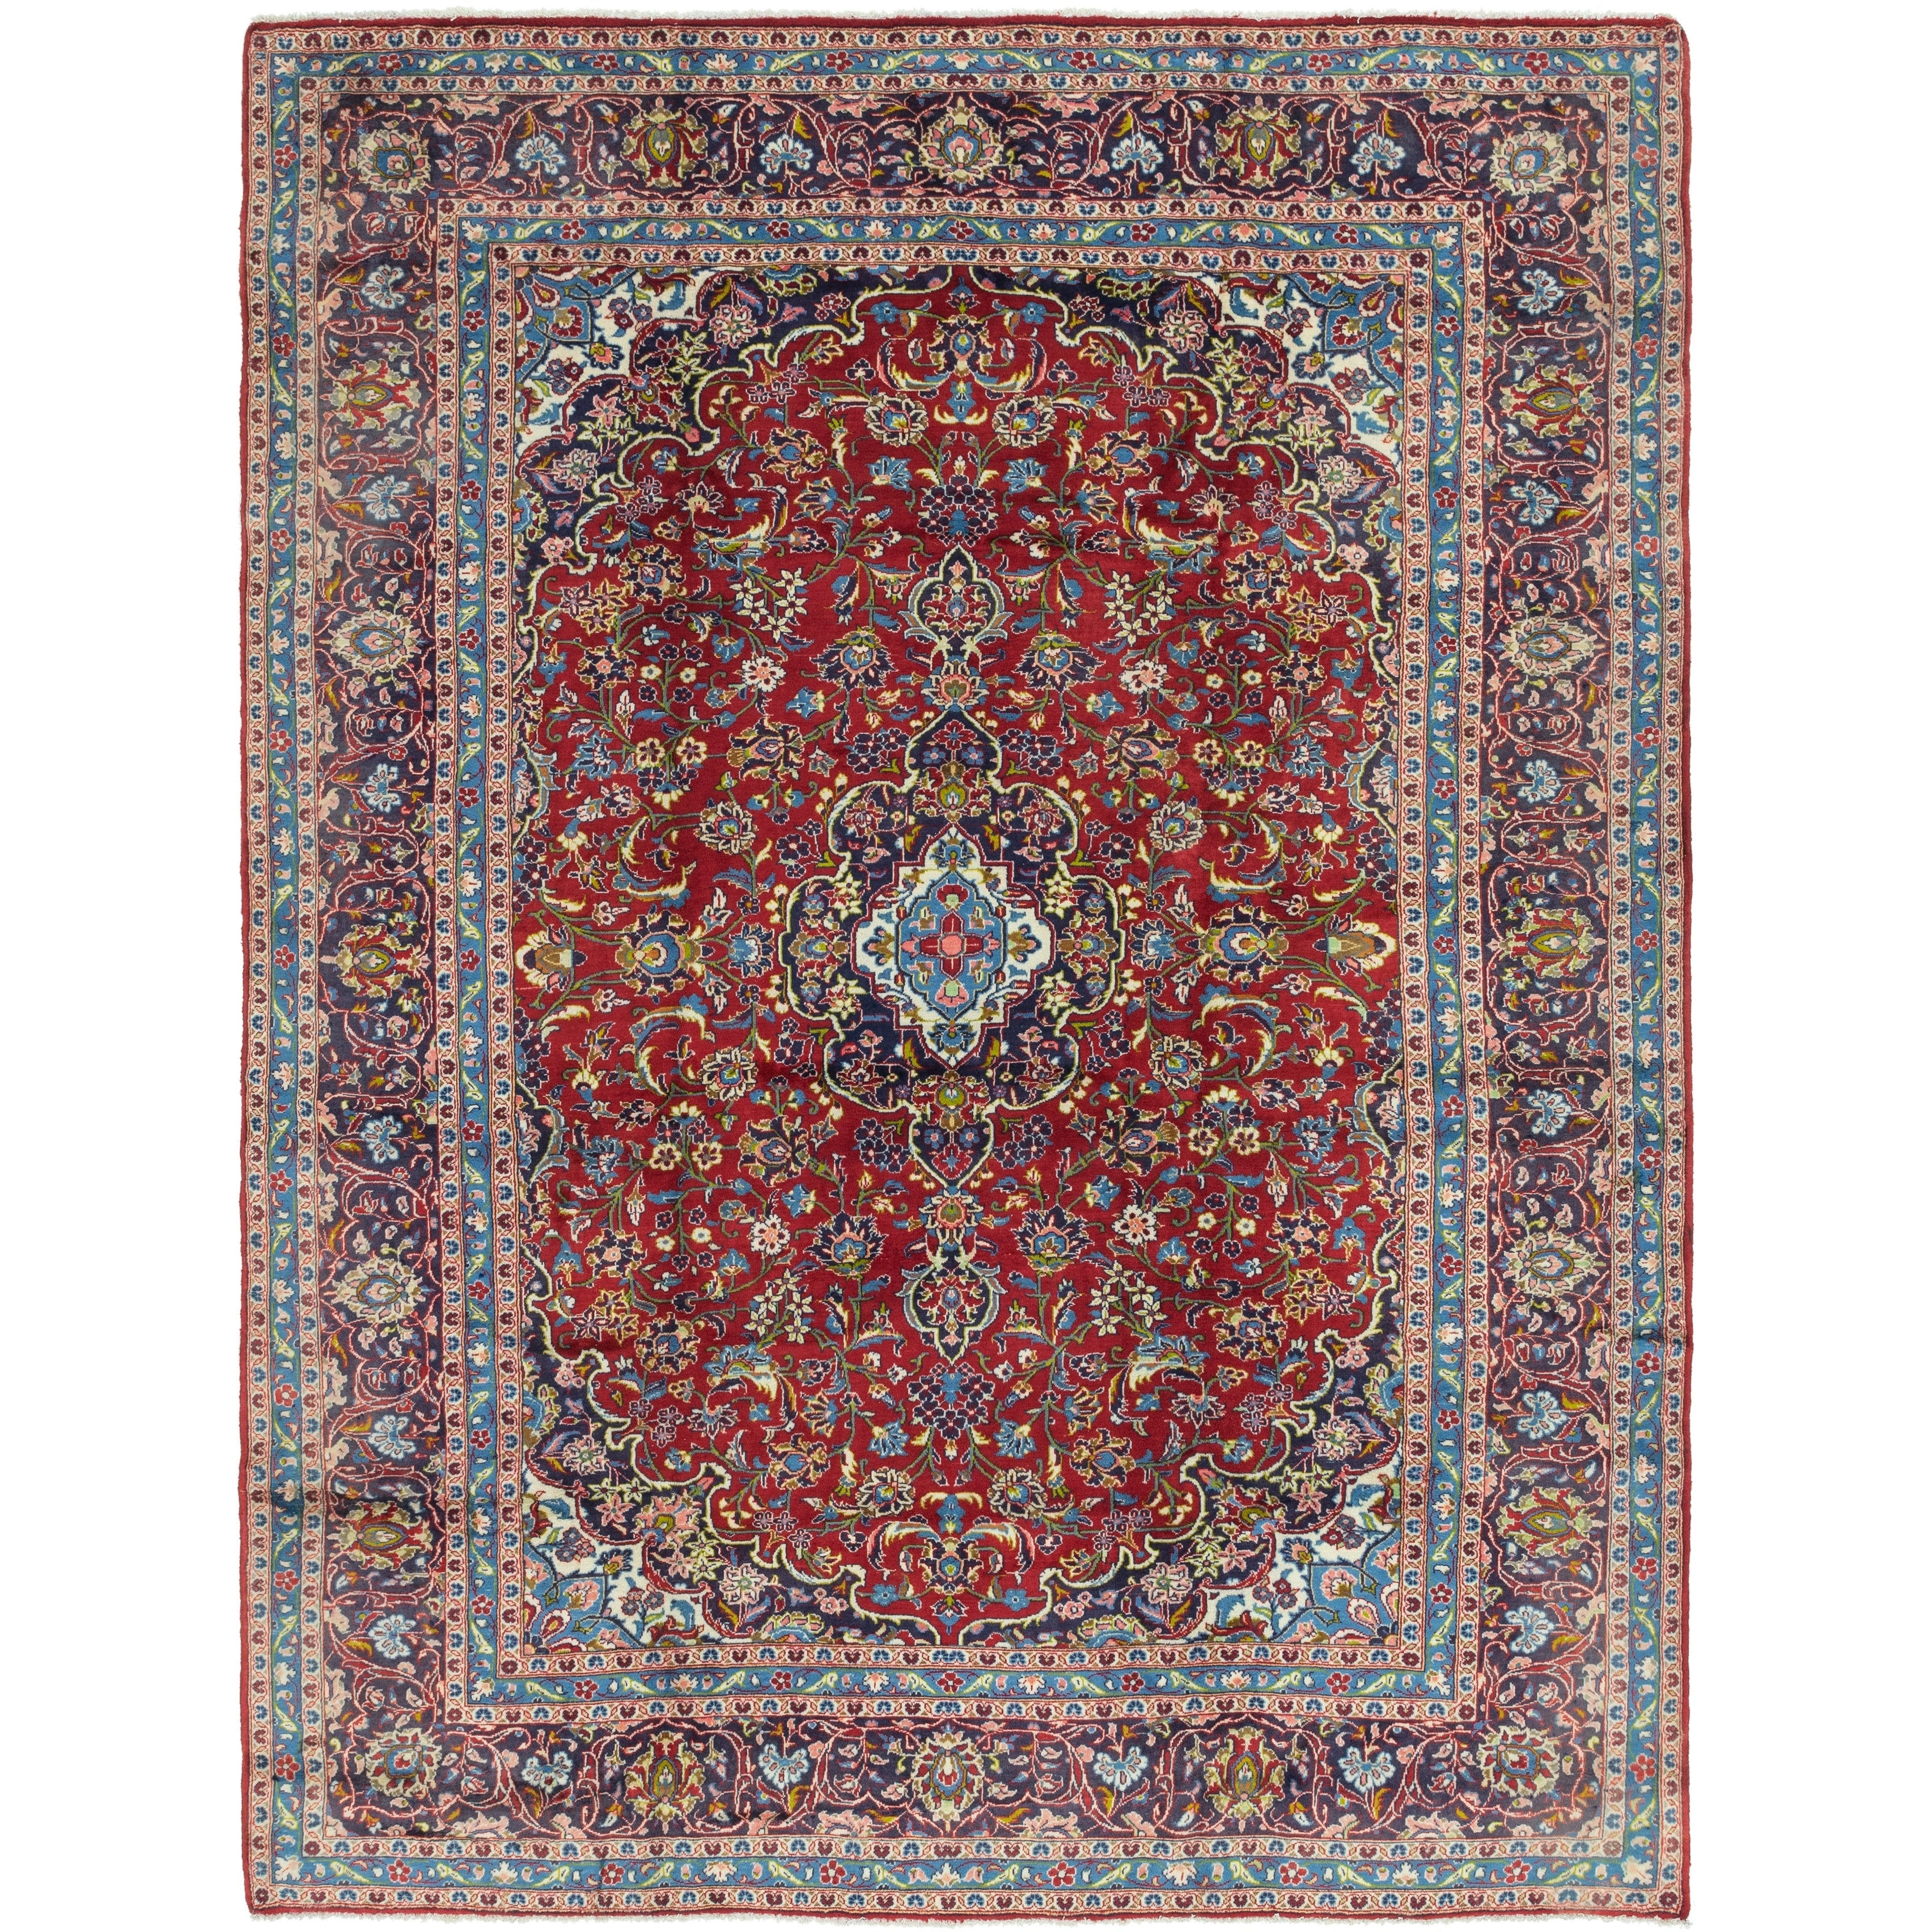 Hand Knotted Kashan Semi Antique Wool Area Rug - 9 10 x 12 9 (Red - 9 10 x 12 9)